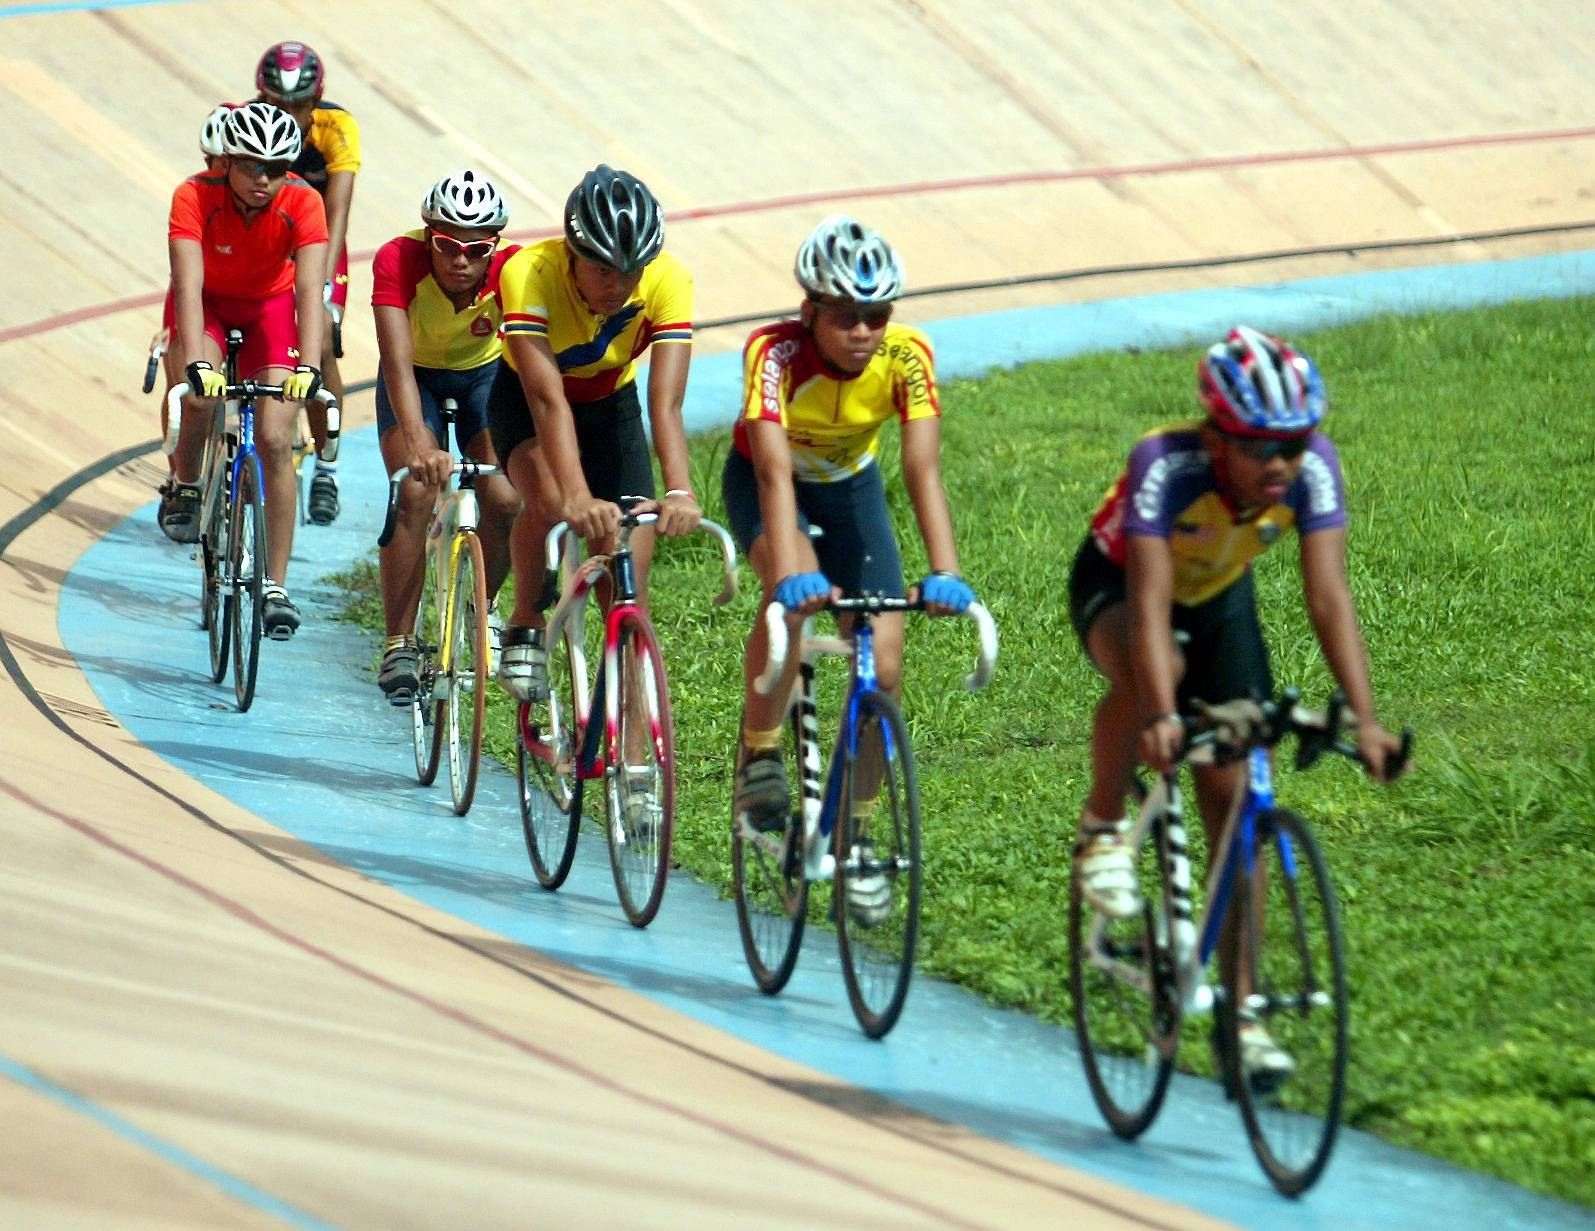 Cyclists training at the Kuala Lumpur Velodrome in a file photo. The MNCF want a replacement velodrome to be built while waiting for the Class 1 velodrome in Nilai to be completed, as cyclists will have nowhere to train once the Kuala Lumpur Velodrome is demolished.